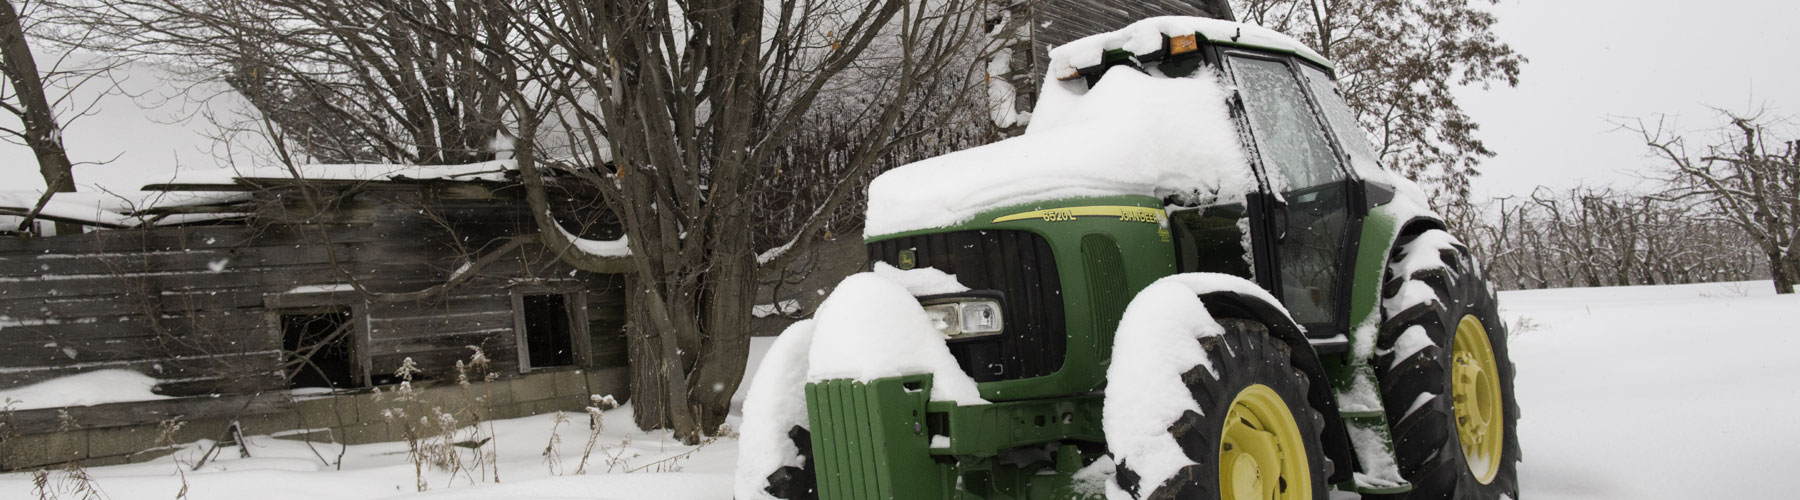 John Deer tractor covered in snow